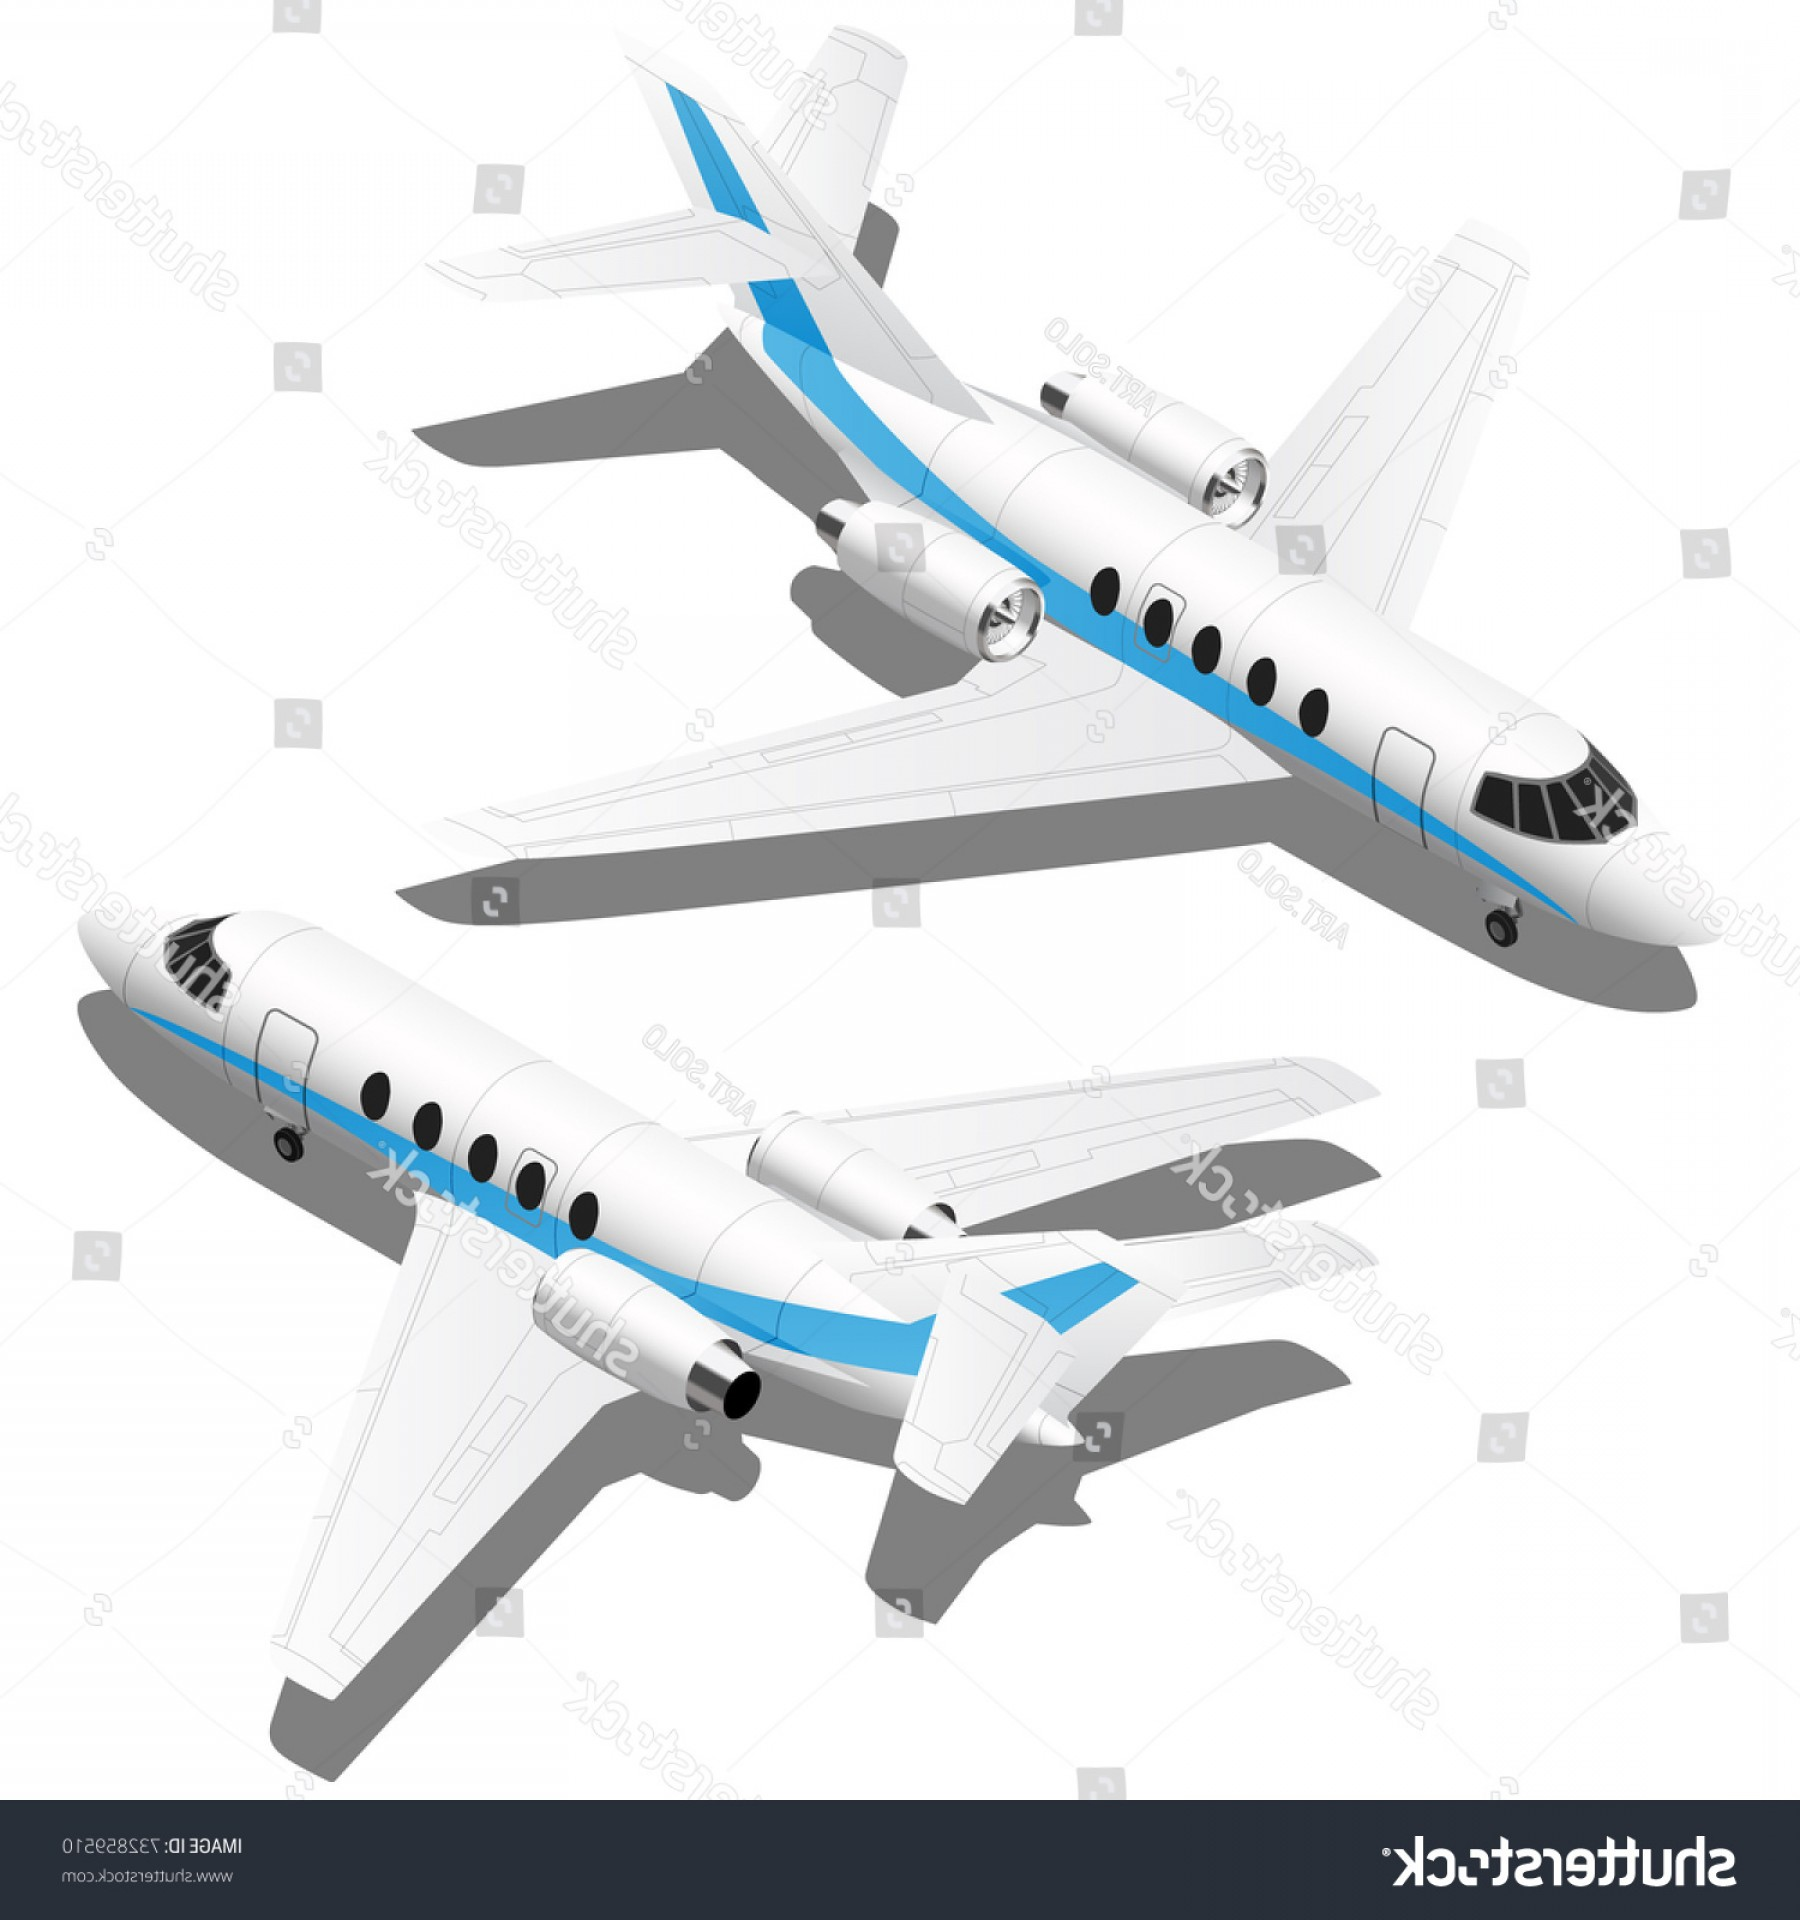 1800x1920 Vector Based Graphics Of Airplanes Sohadacouri